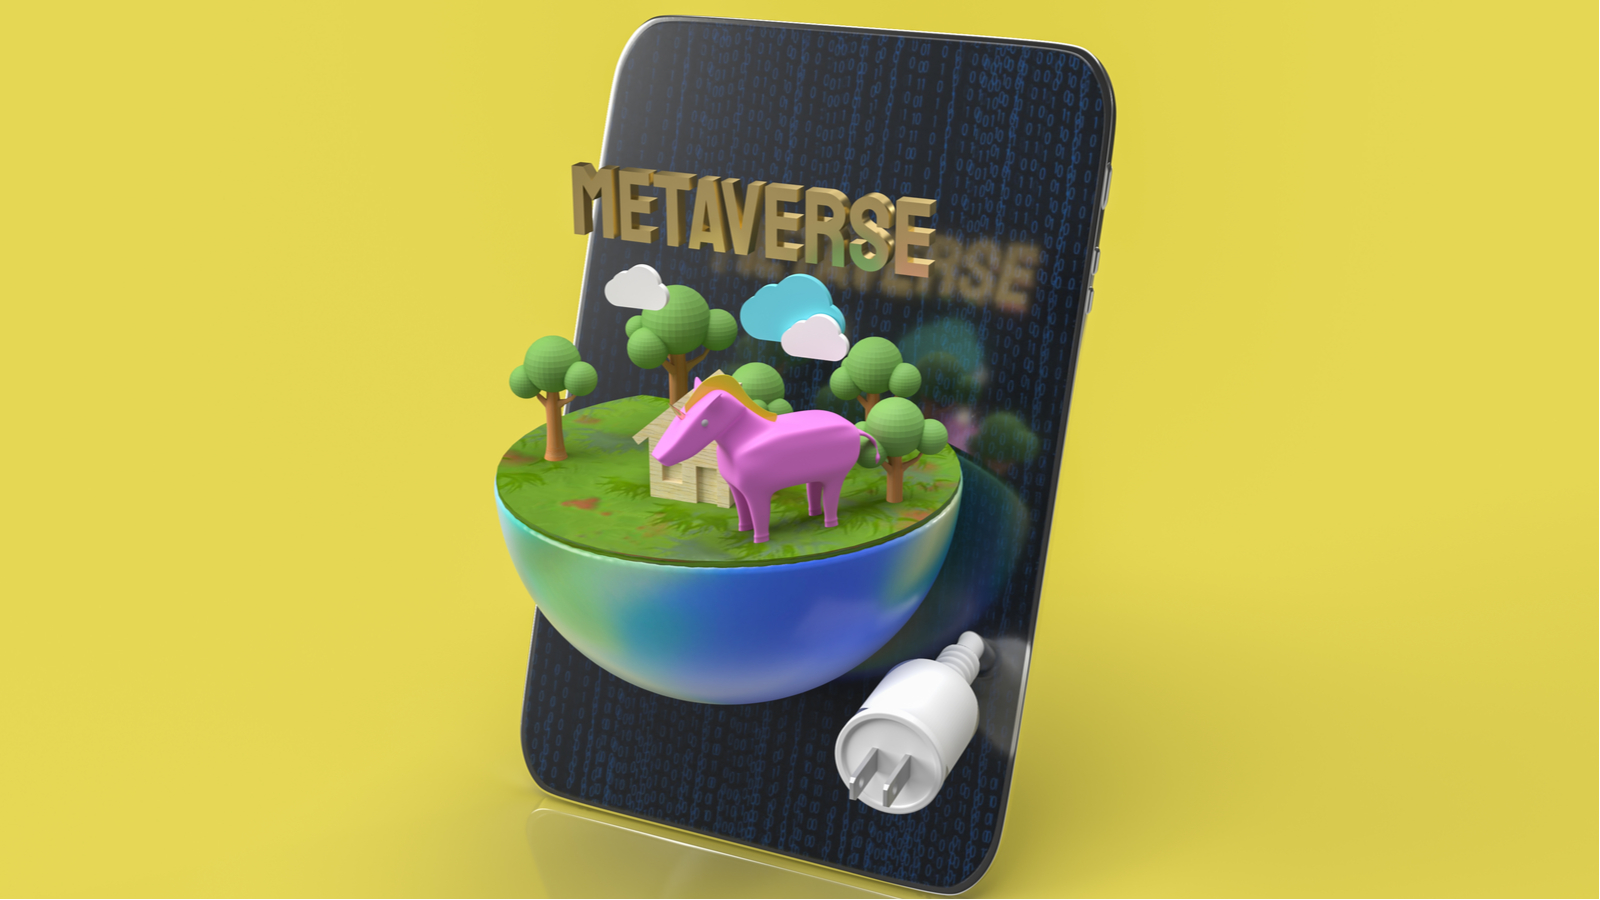 metaverse popping out of mobile phone concept